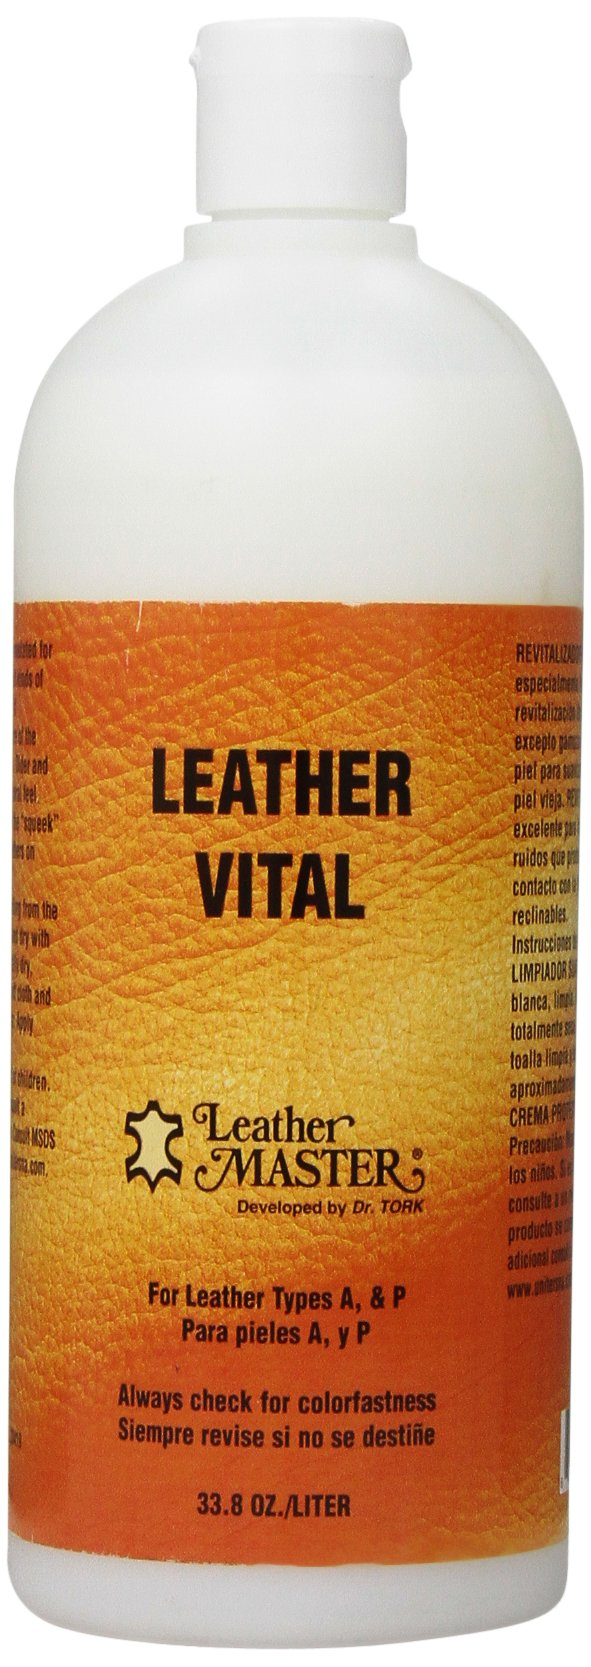 Leather Masters Leather Vital Softener and Revitalizer